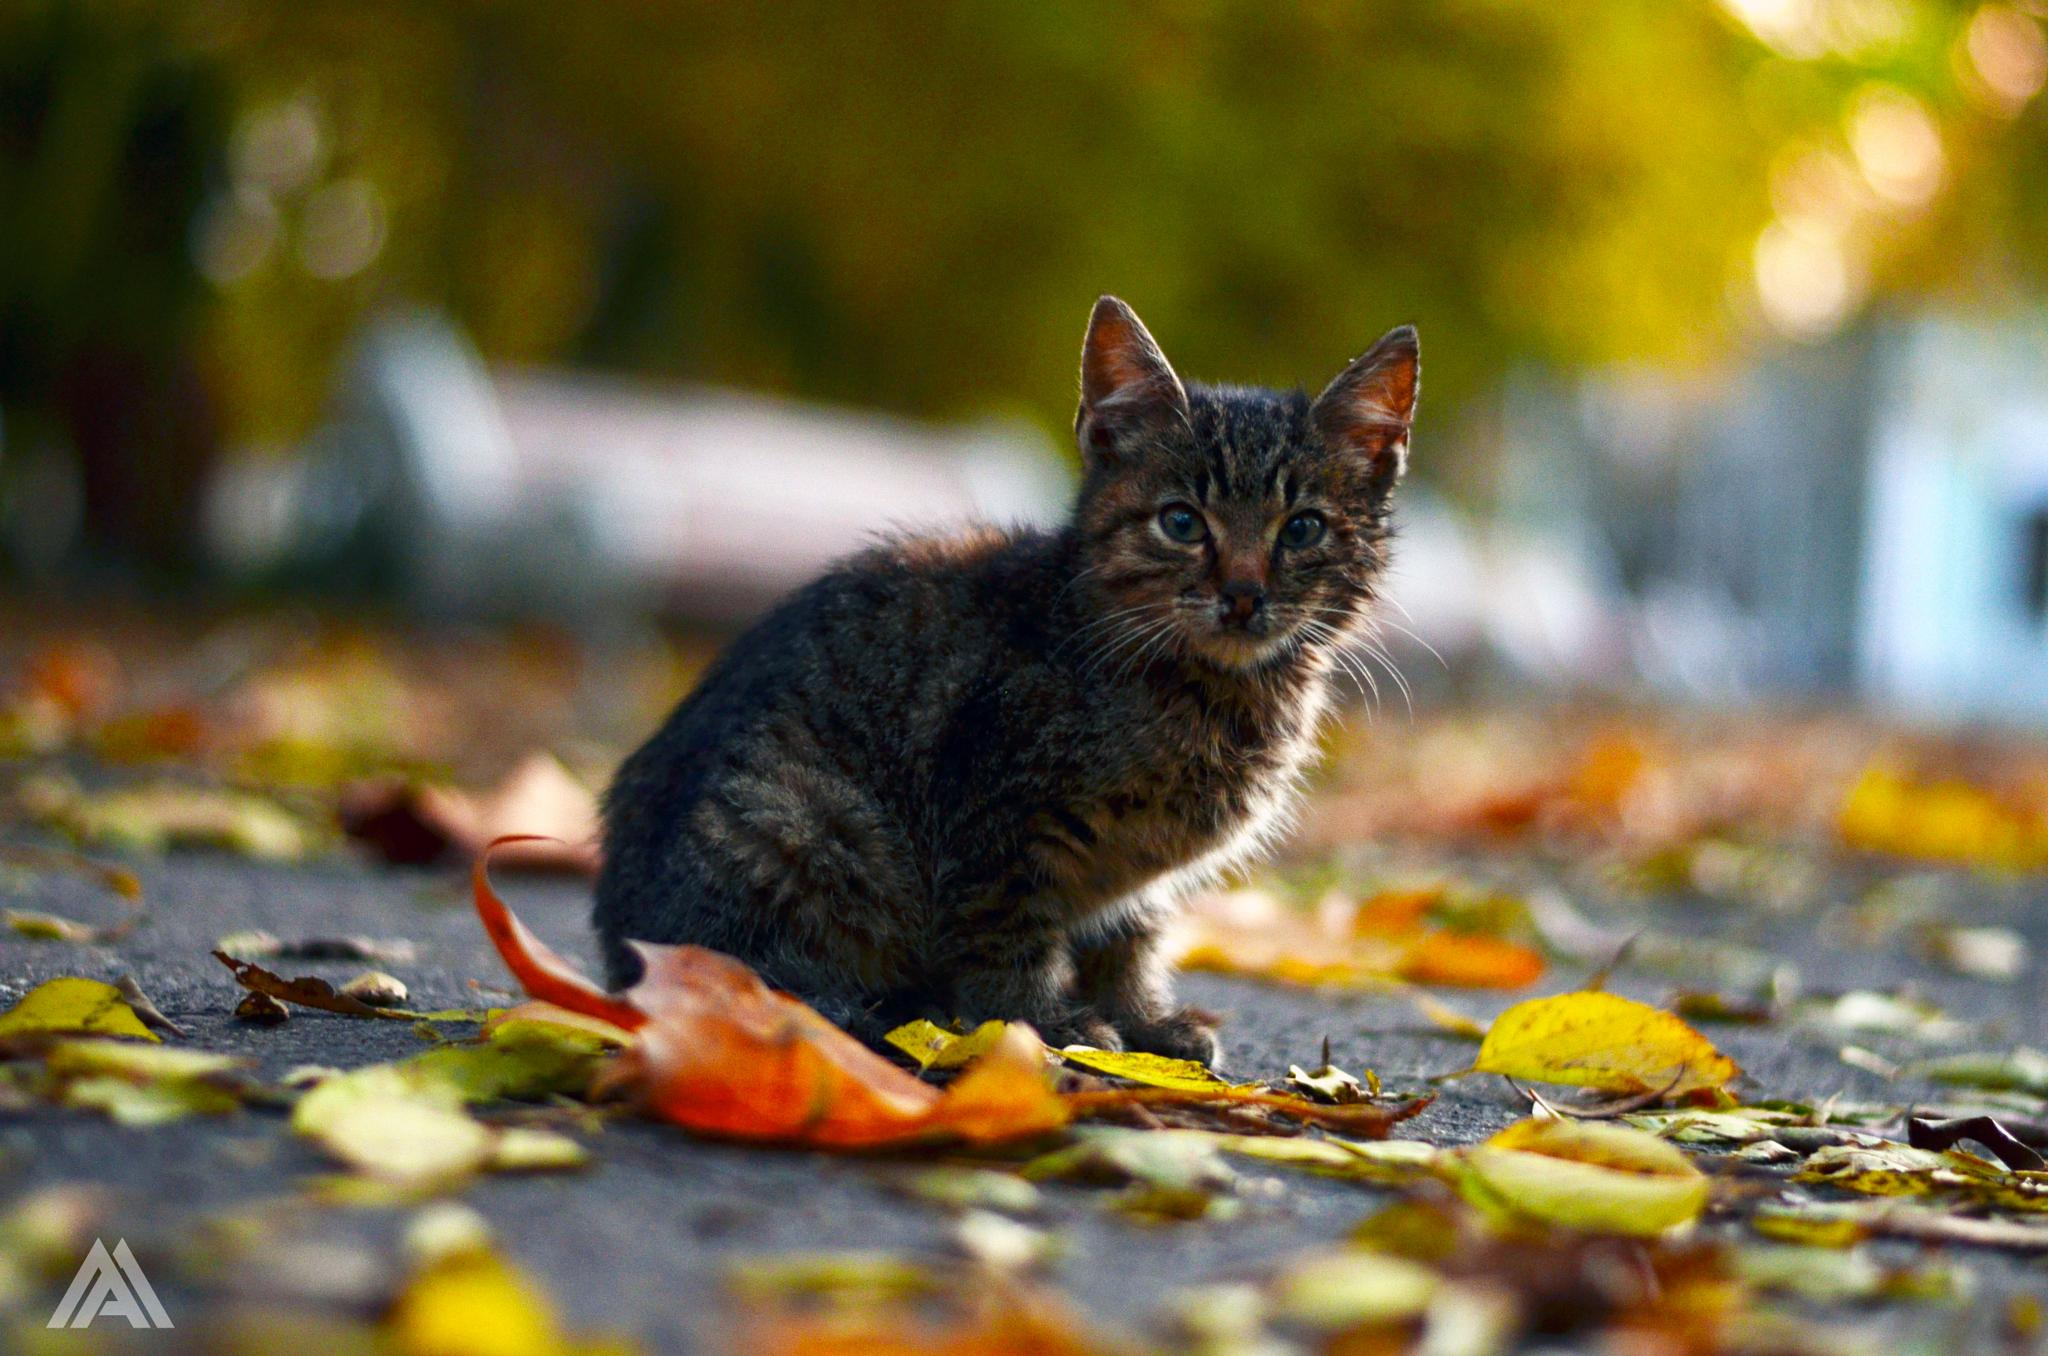 Lost My Kitty by Mihai Andrei